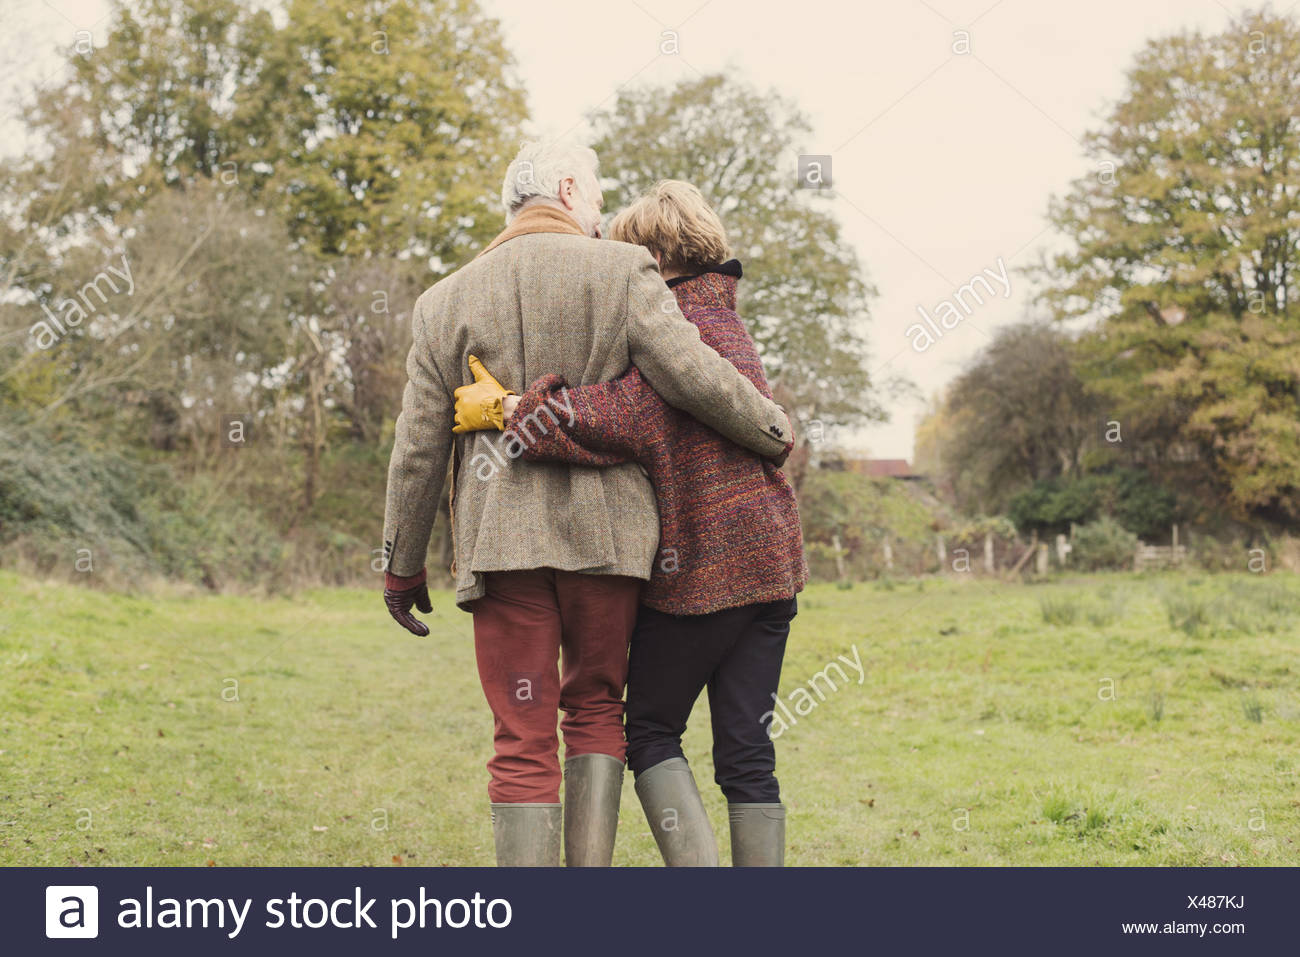 Couple in garden with arms around each other, rear view - Stock Image